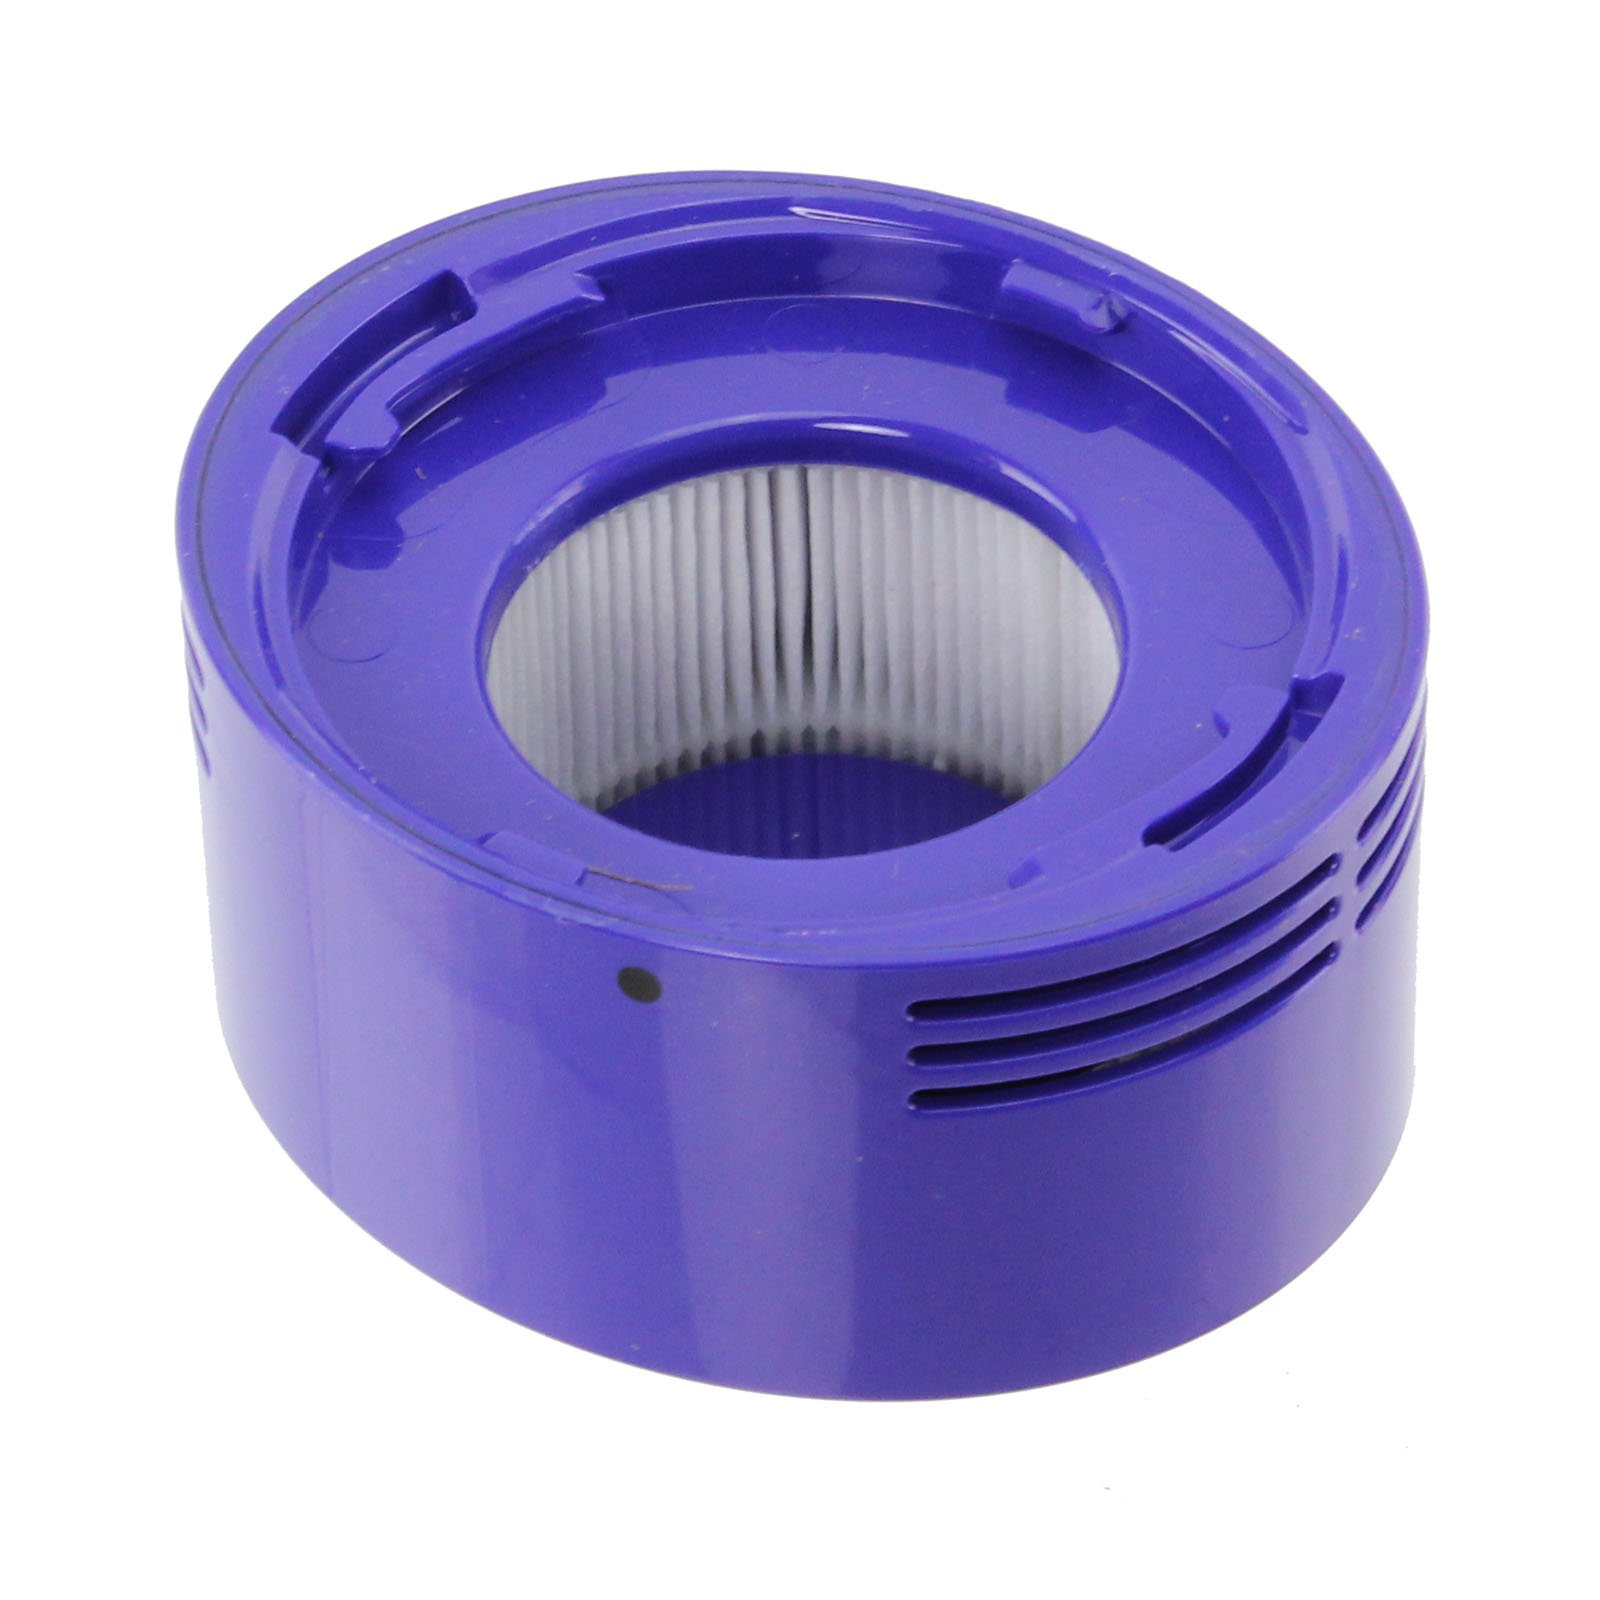 SPARES2GO Post Motor Hepa Filter for Dyson V8 SV10 Animal Absolute Total Clean Cordless Vacuum Cleaner